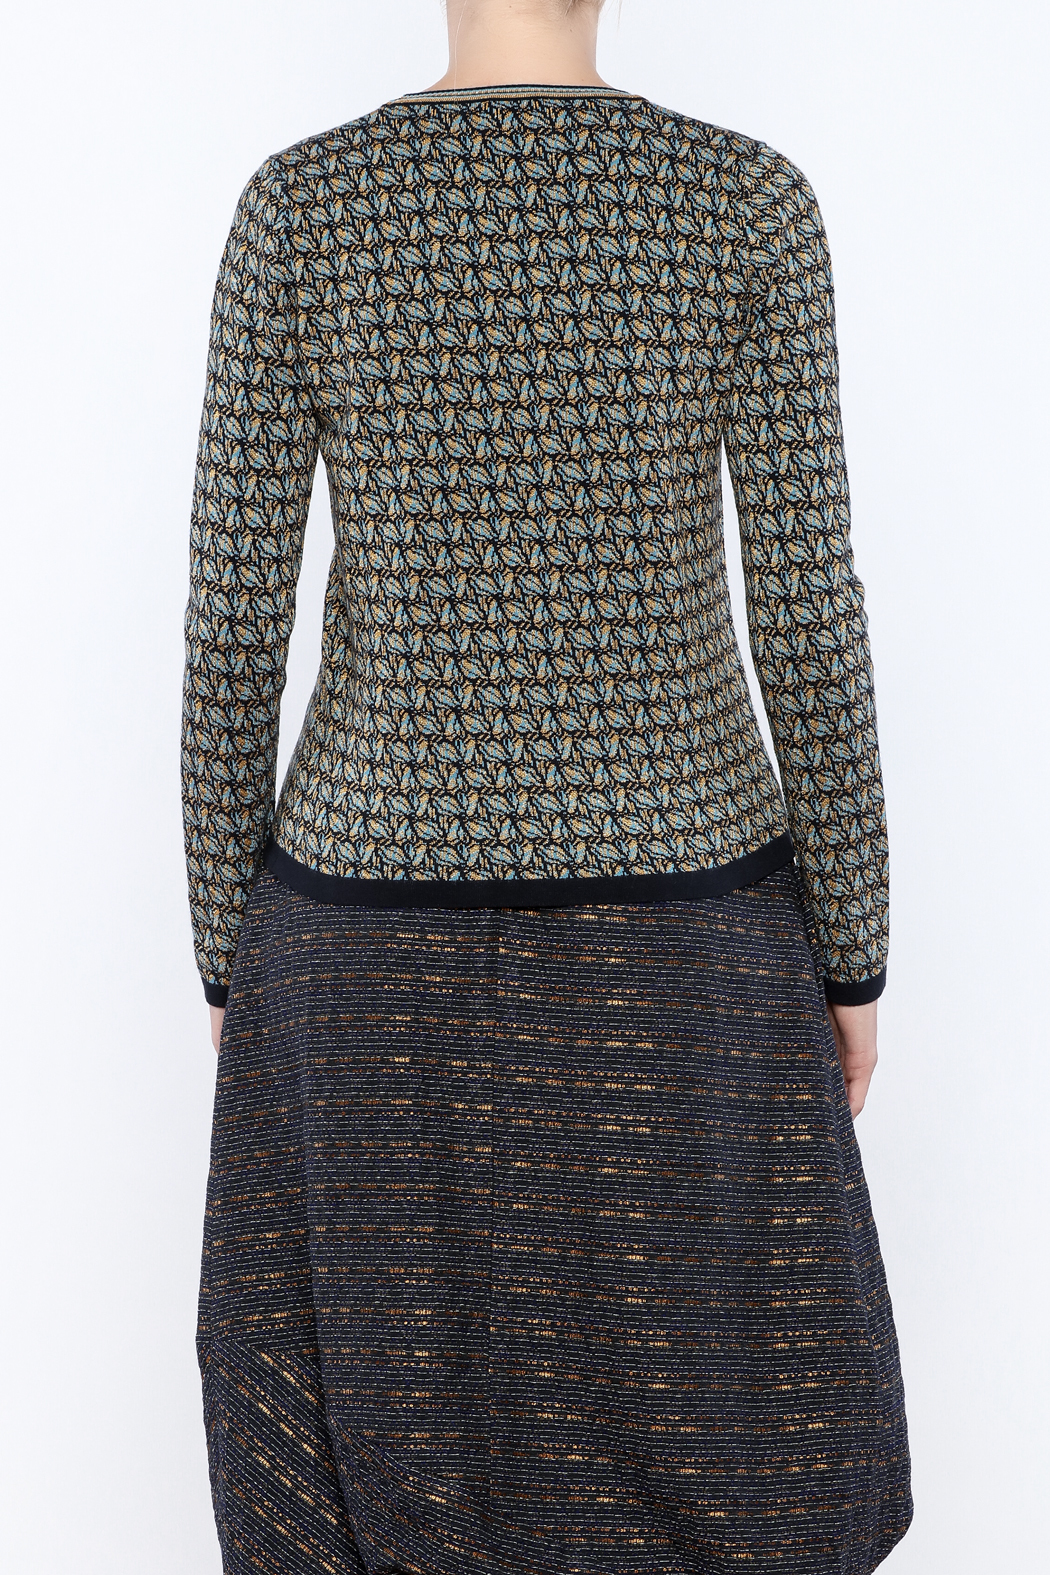 Maliparmi Pull Over Sweater - Back Cropped Image